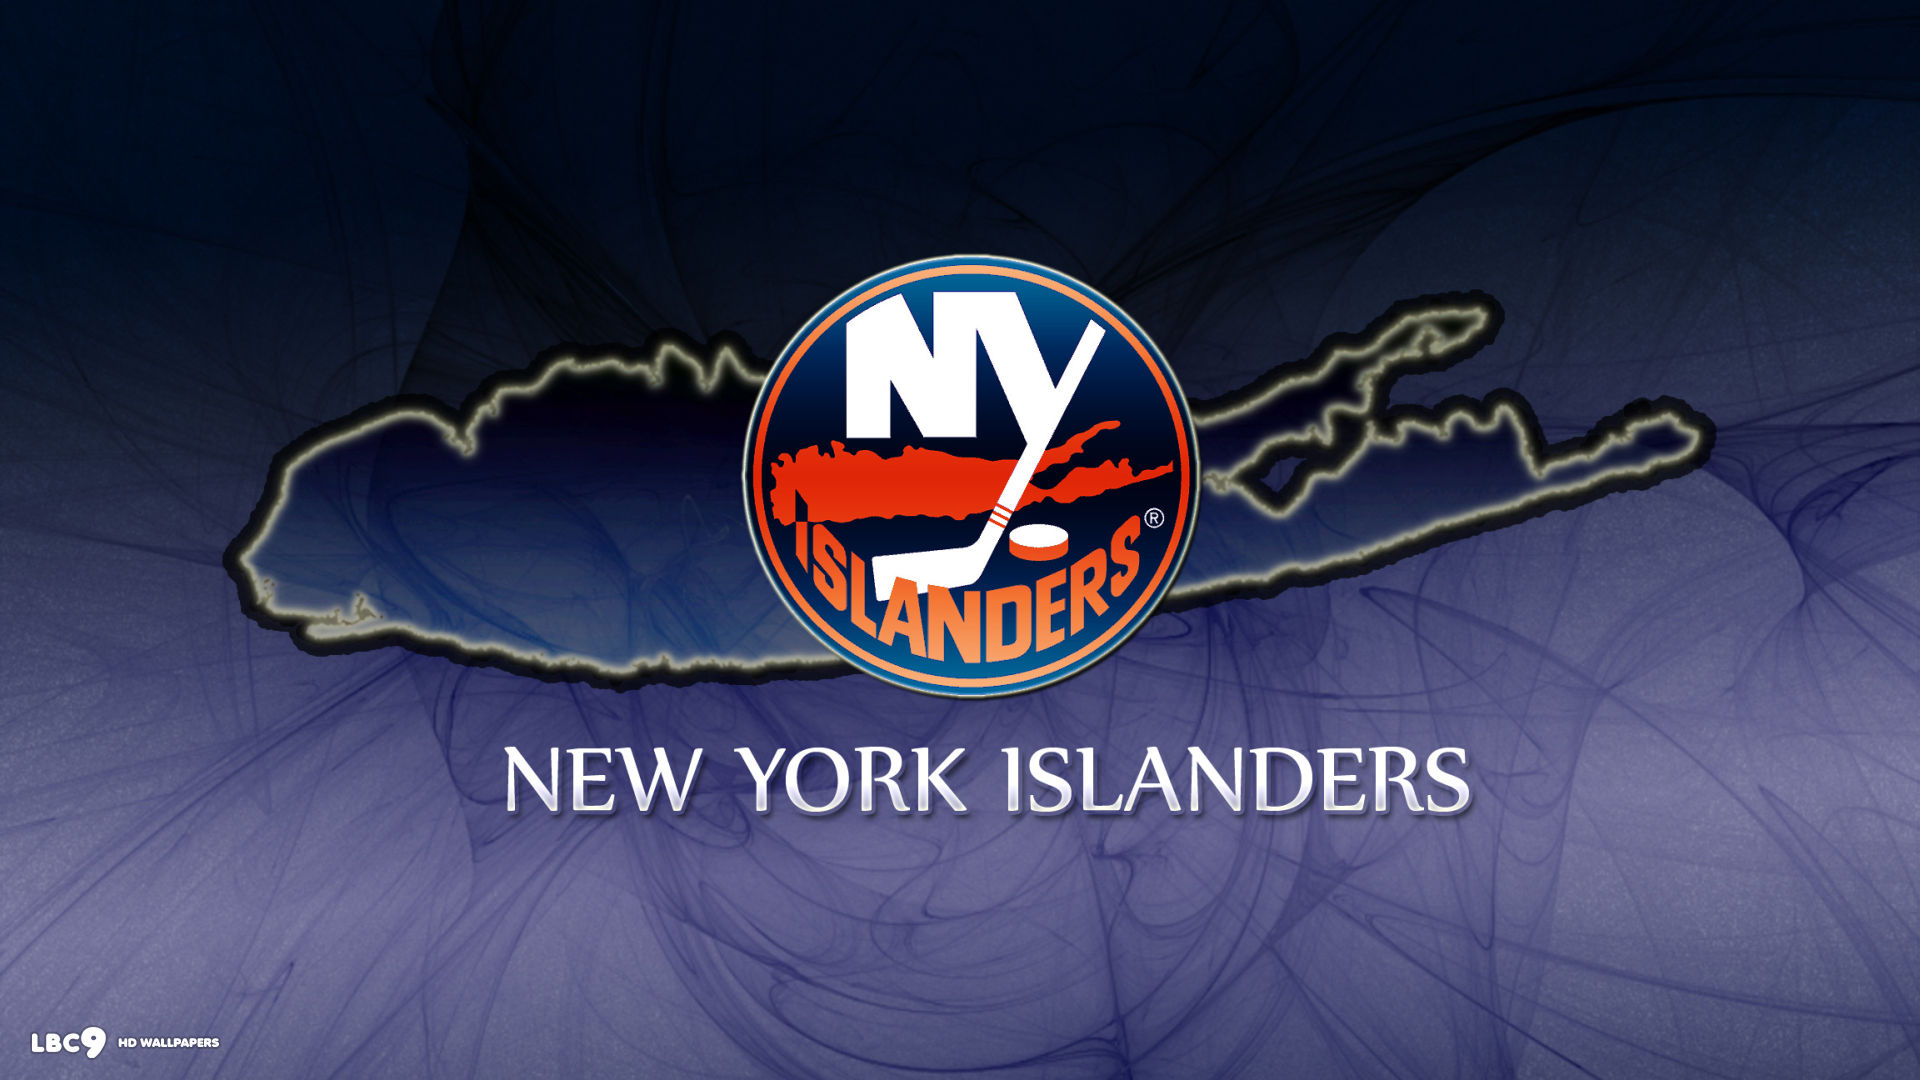 new york islanders iphone wallpaper wallpapersafari